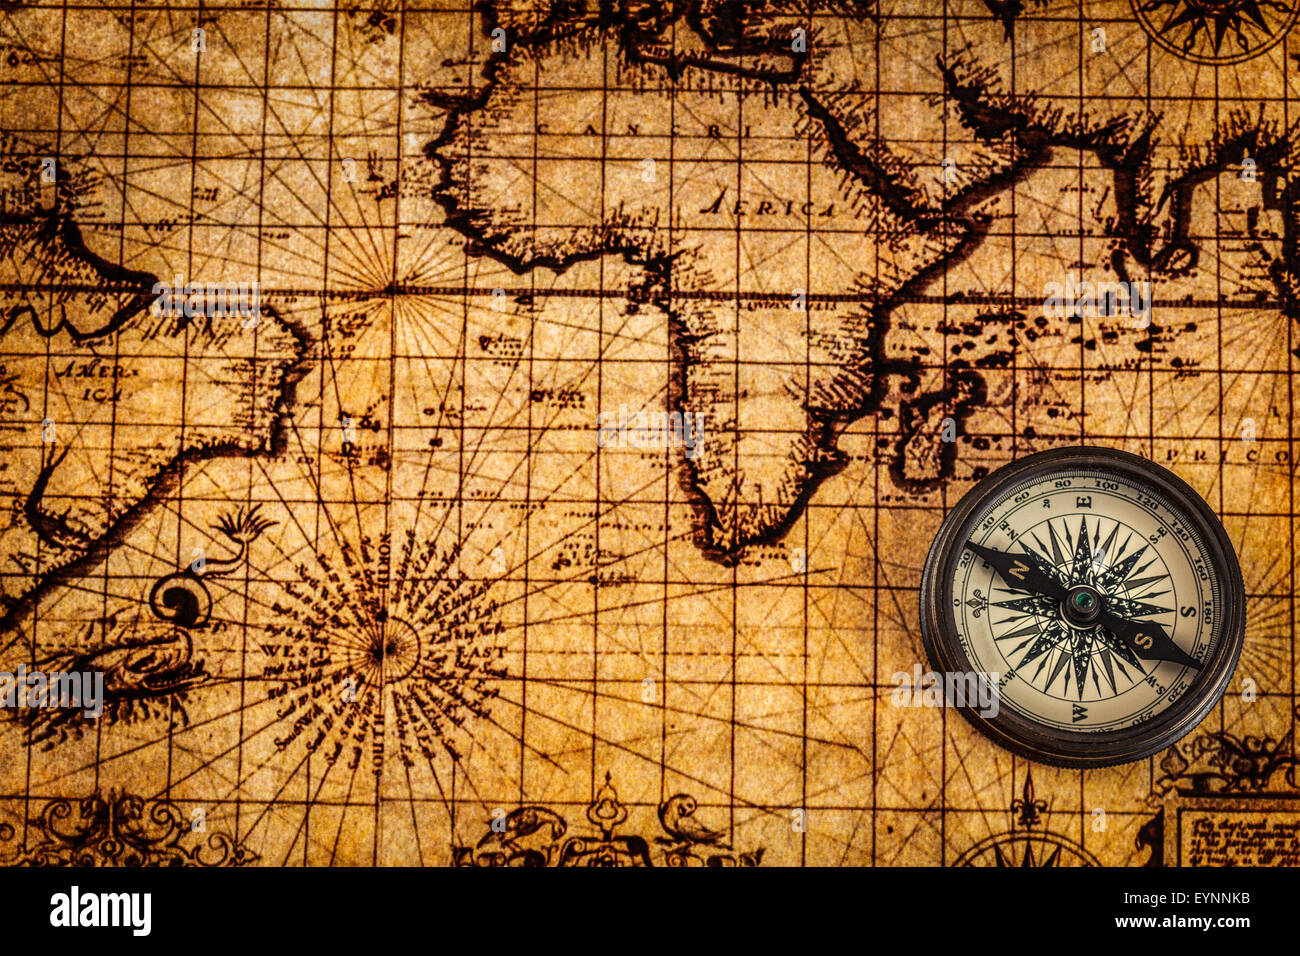 Navigation World Map.Travel Geography Navigation Concept Background Old Vintage Retro